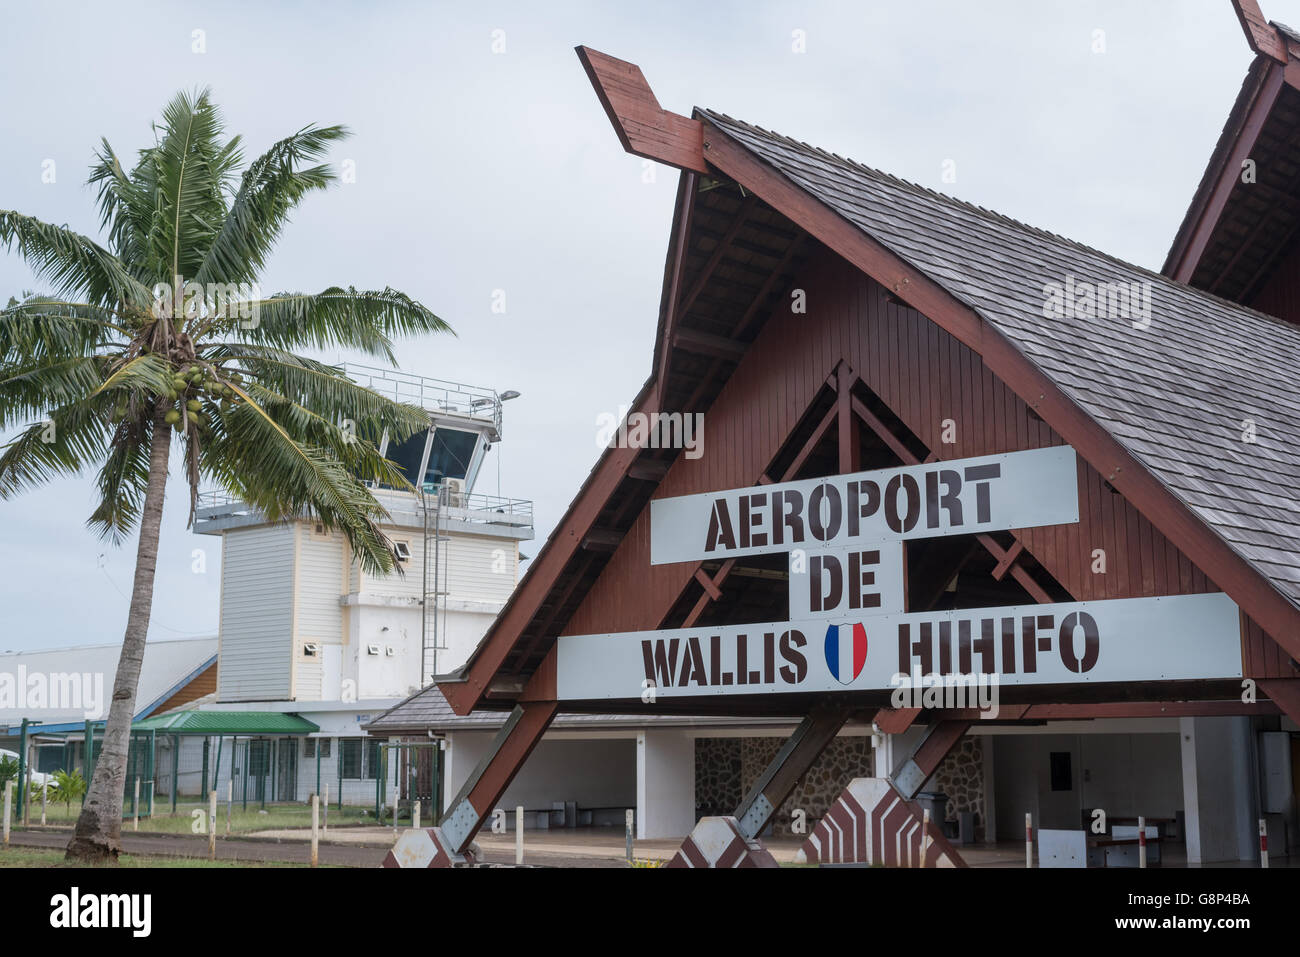 Hihifo, Wallis et Futuna - June 21, 2016: Main entrance of Hihifo Wallis island airport - Stock Image